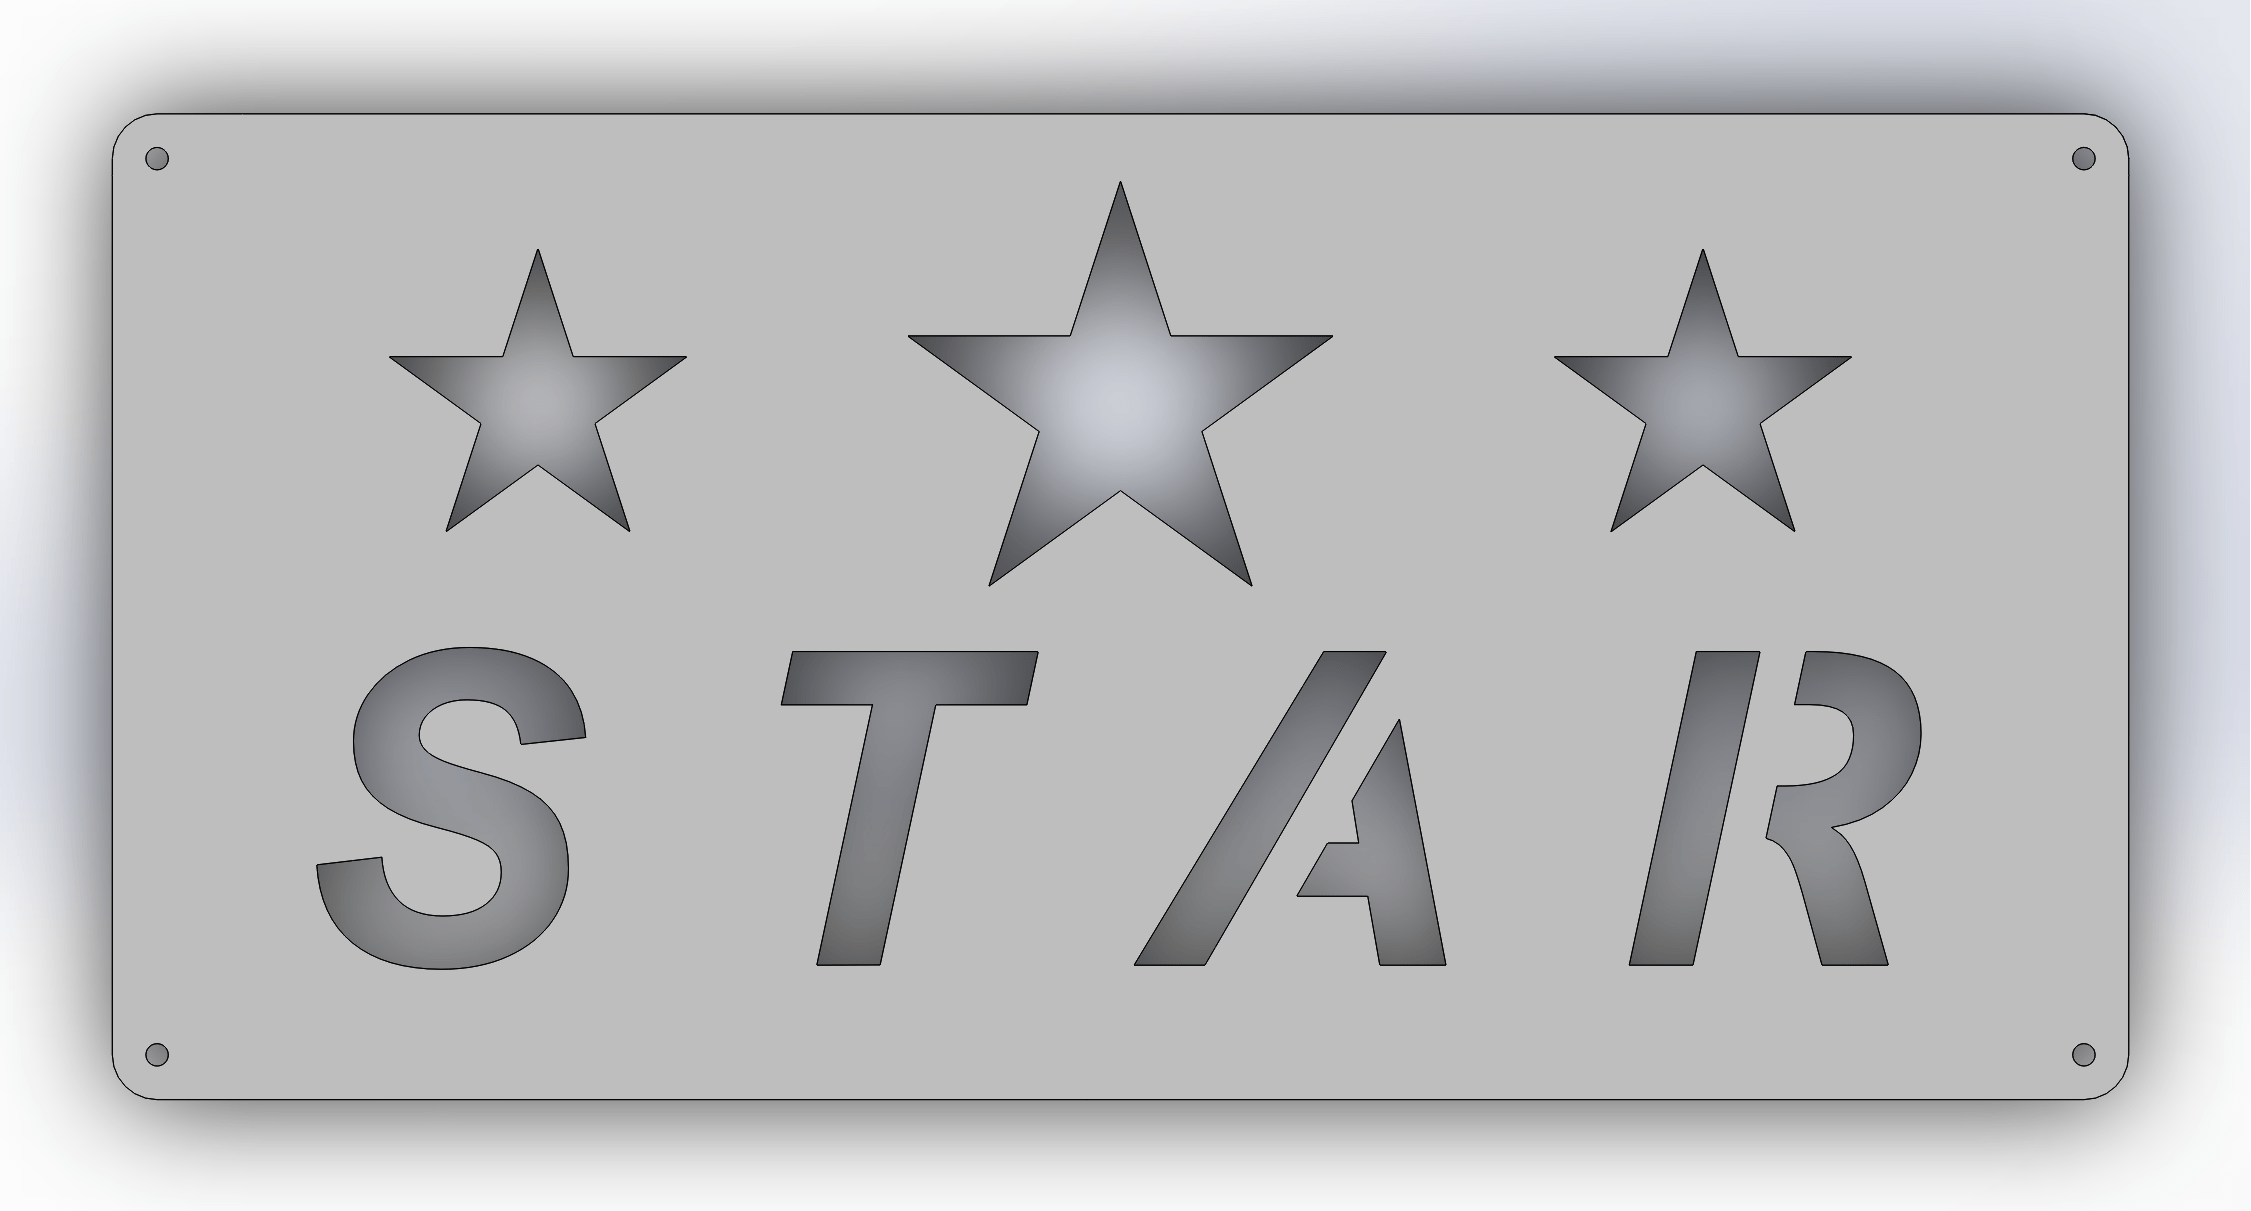 A simple sign drawn in Solidworks